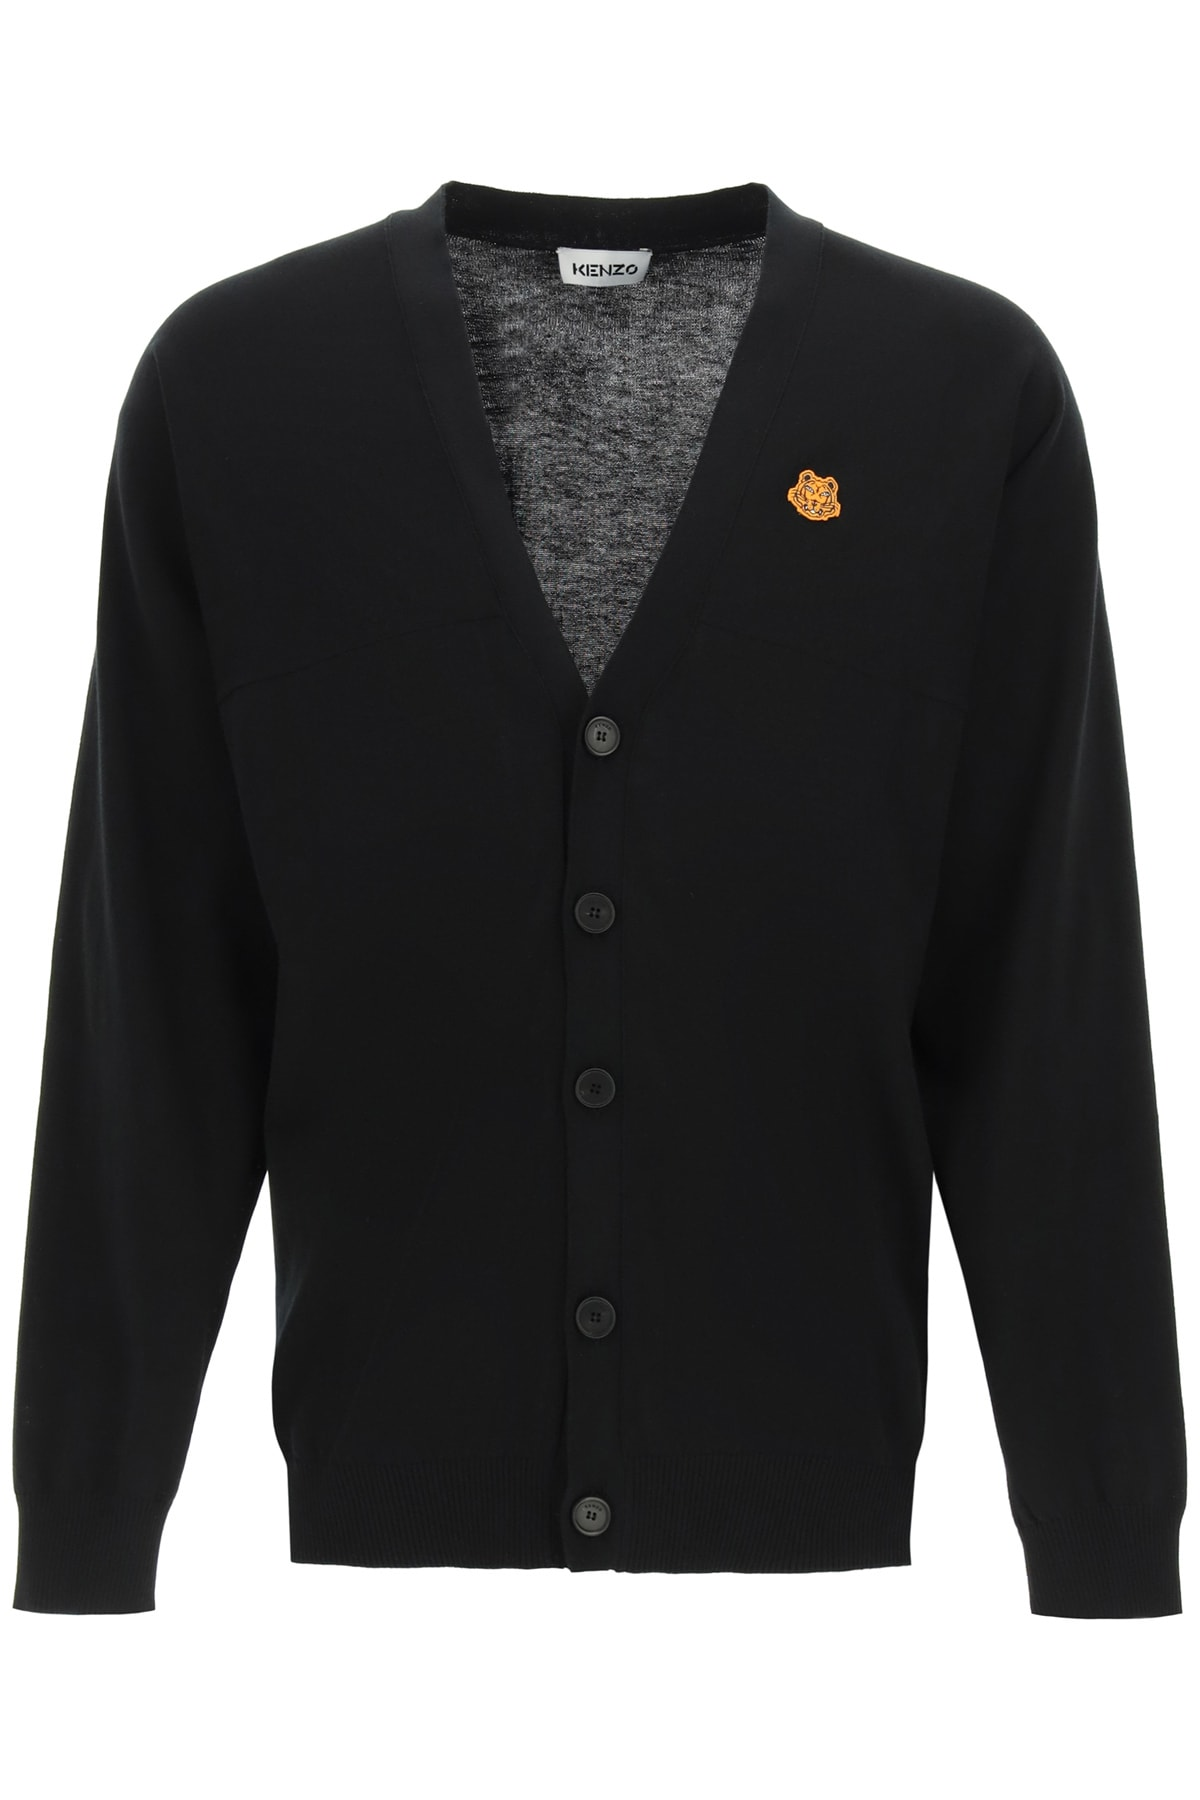 Kenzo OVERSIZED CARDIGAN WITH TIGER CREST PATCH